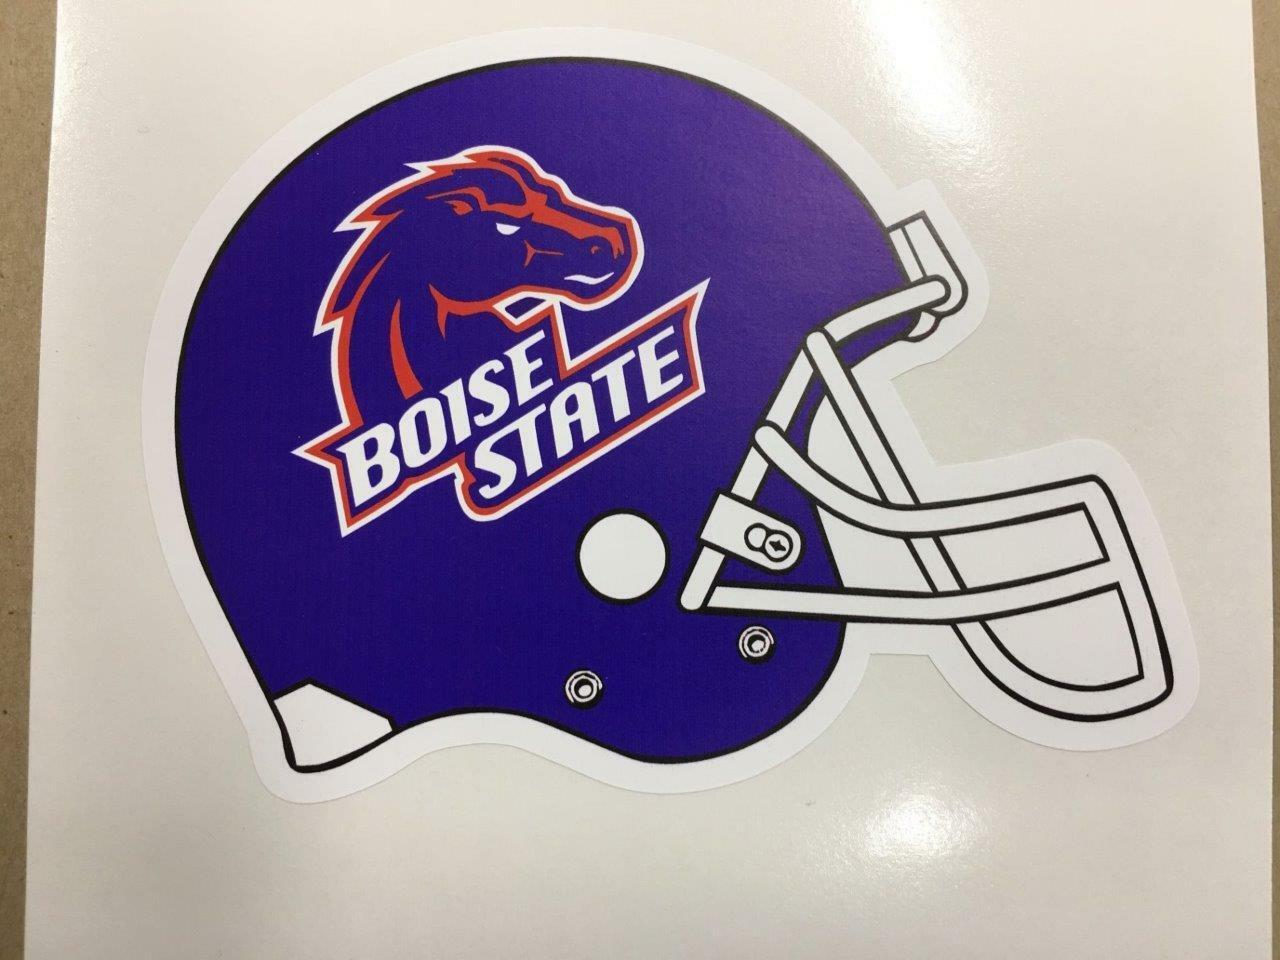 Boise  State cornhole board or vehicle decal(s)BS5  discount low price